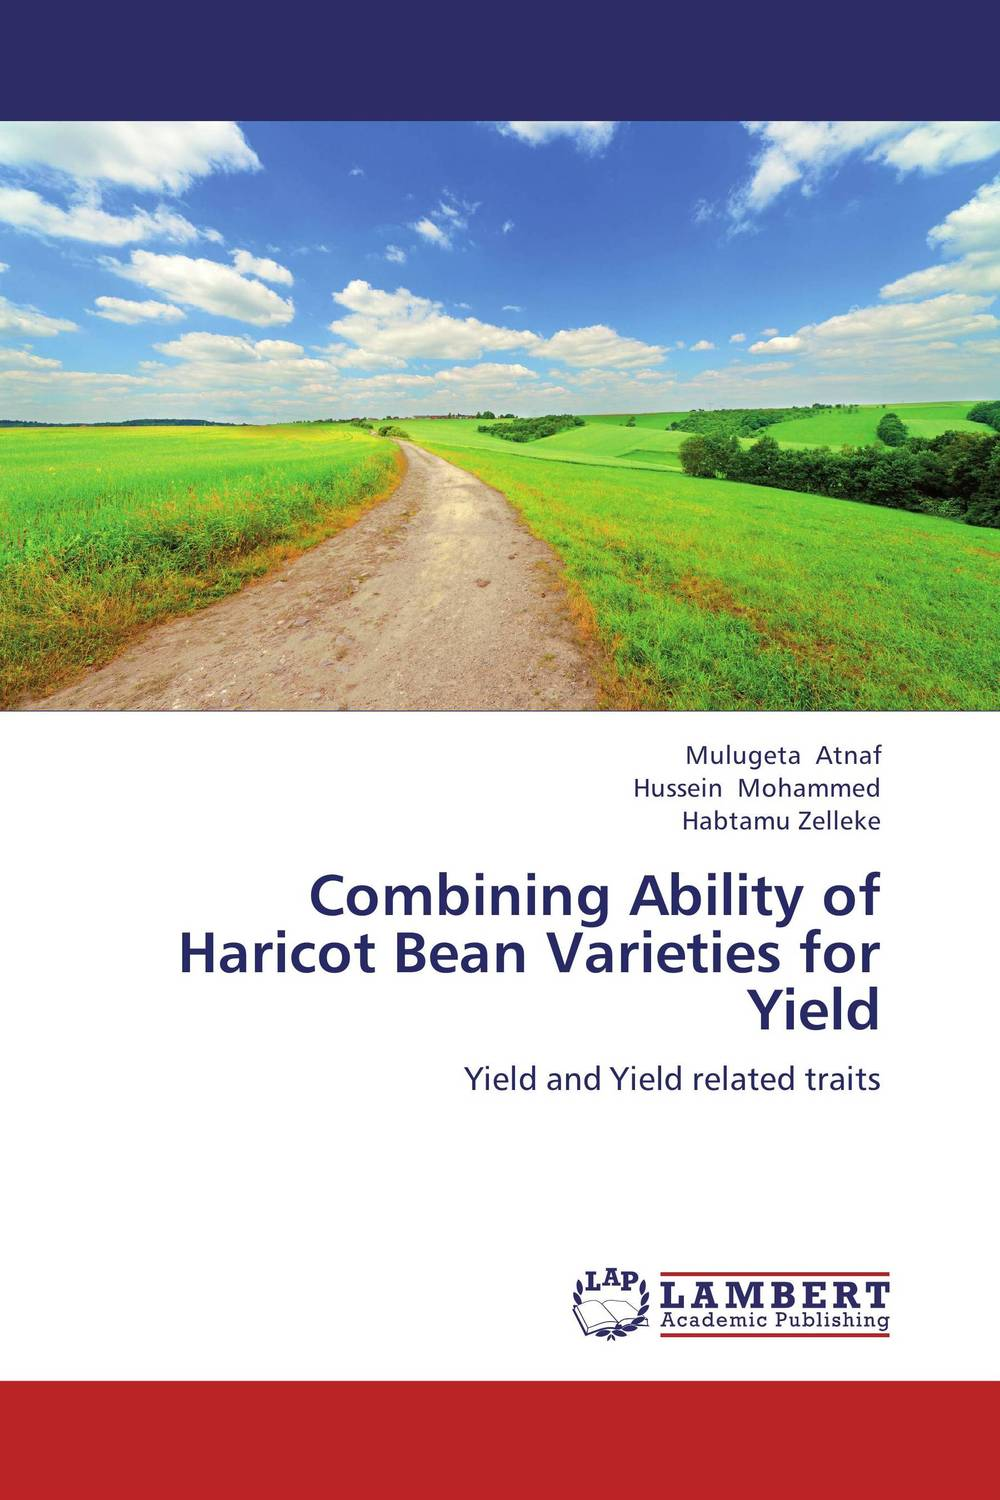 цена на Combining Ability of Haricot Bean Varieties for Yield